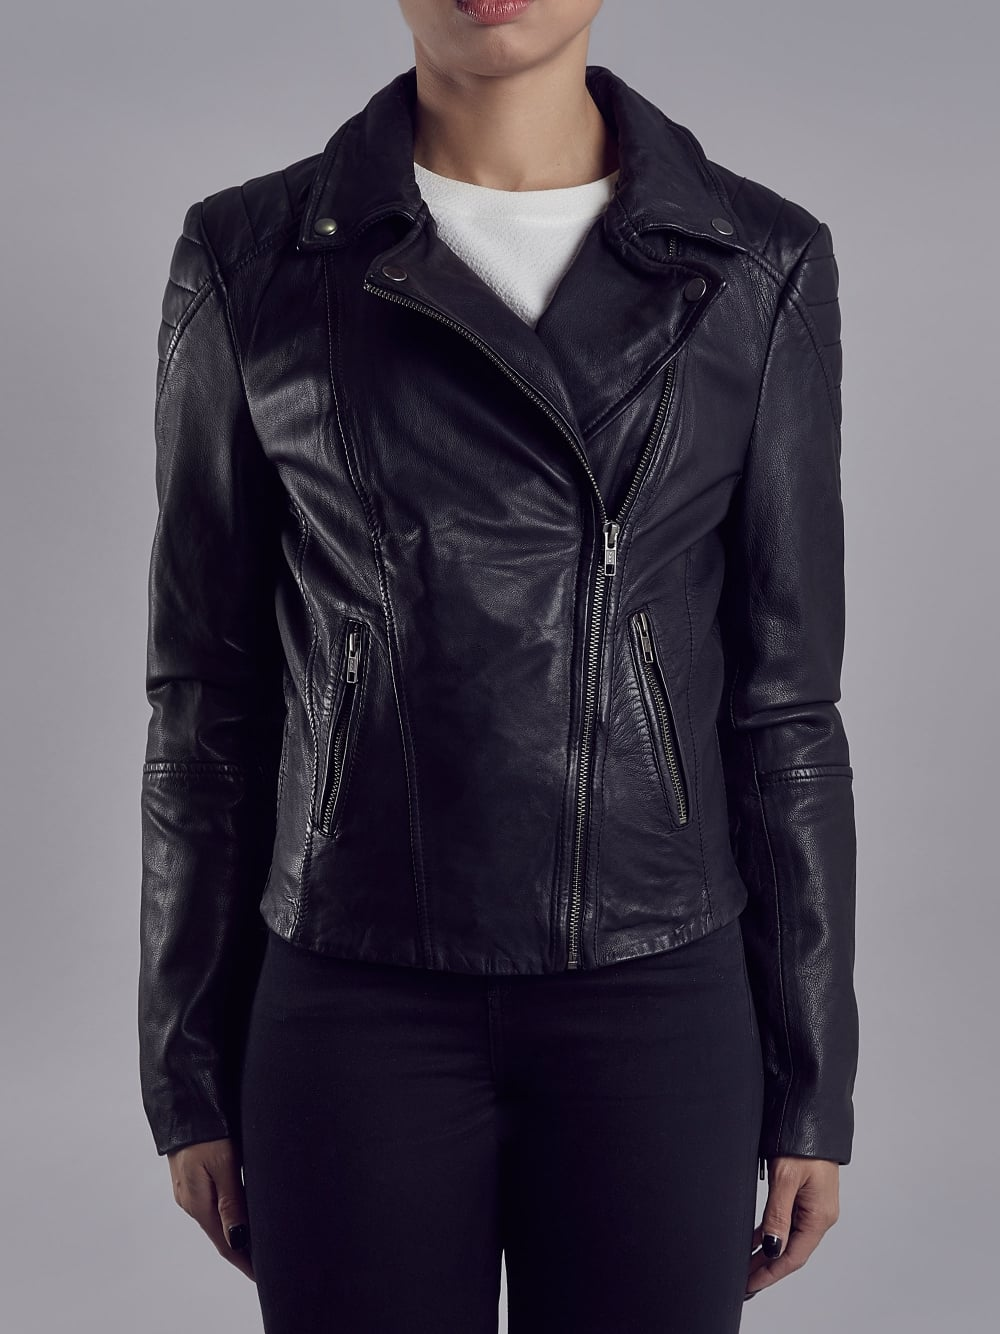 Muubaa Indus Black Leather Biker Jacket